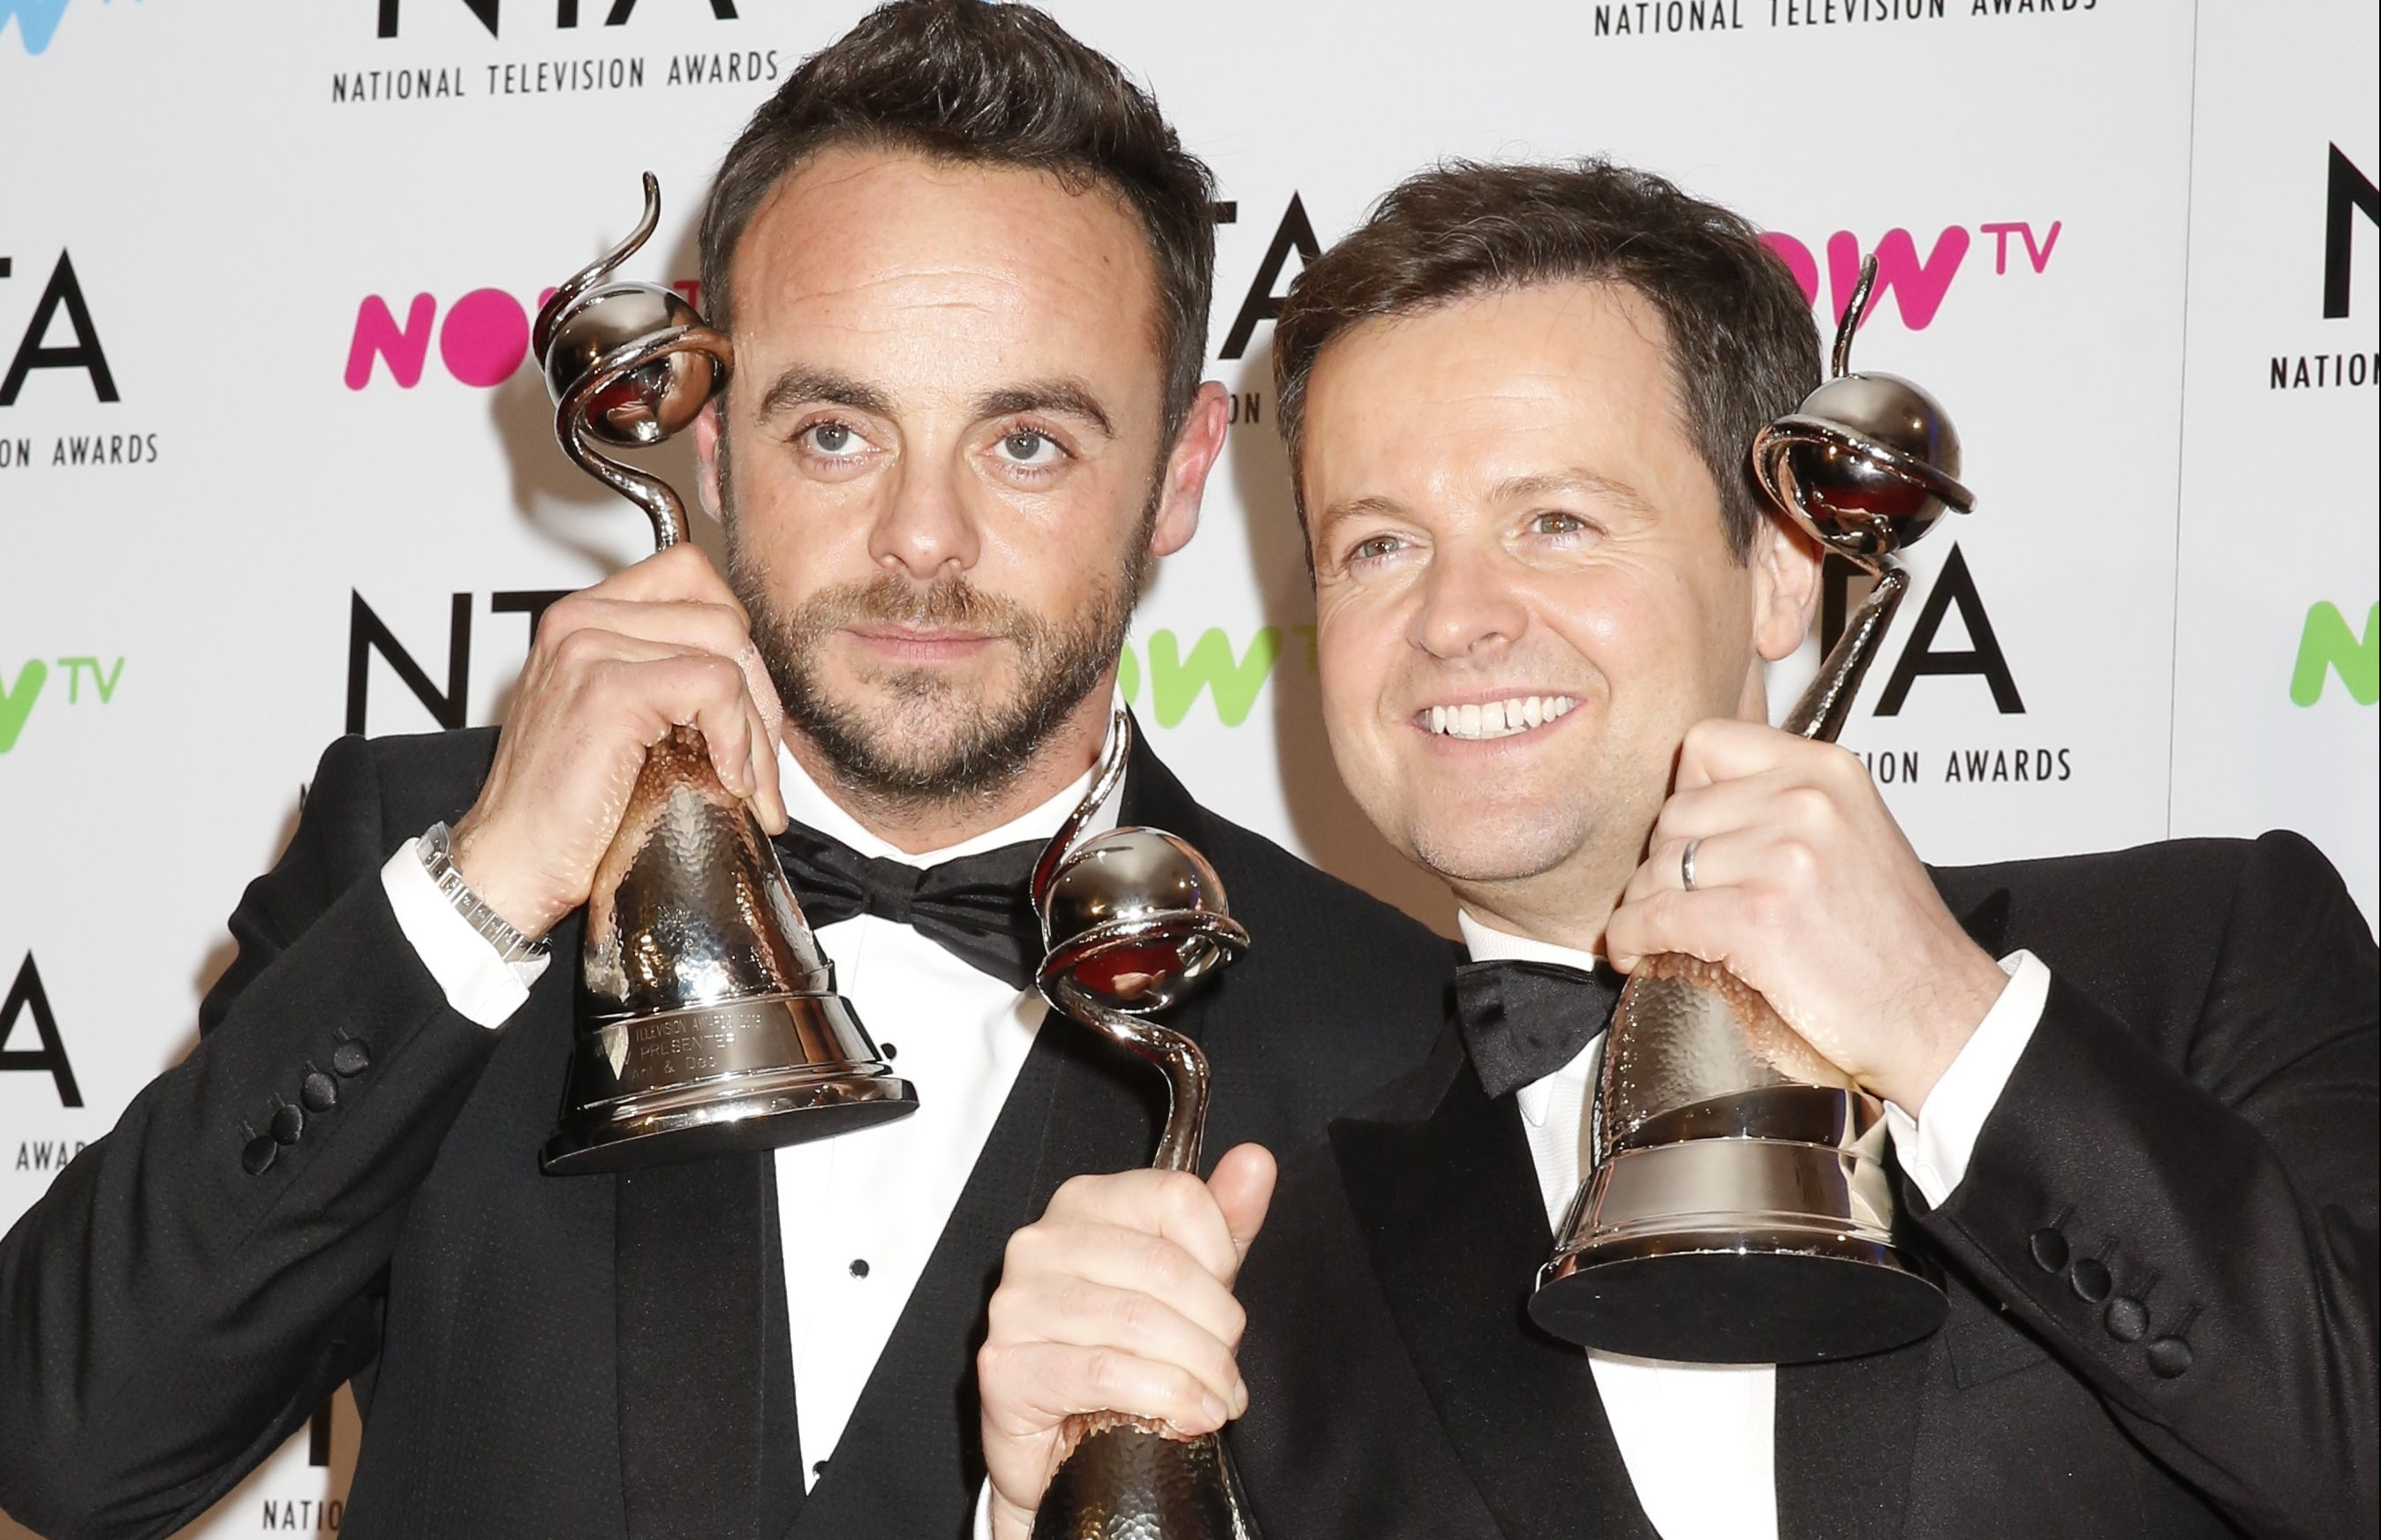 Ant McPartlin Breaks Down During NTA's Speech After 'A Tough Twelve Months'